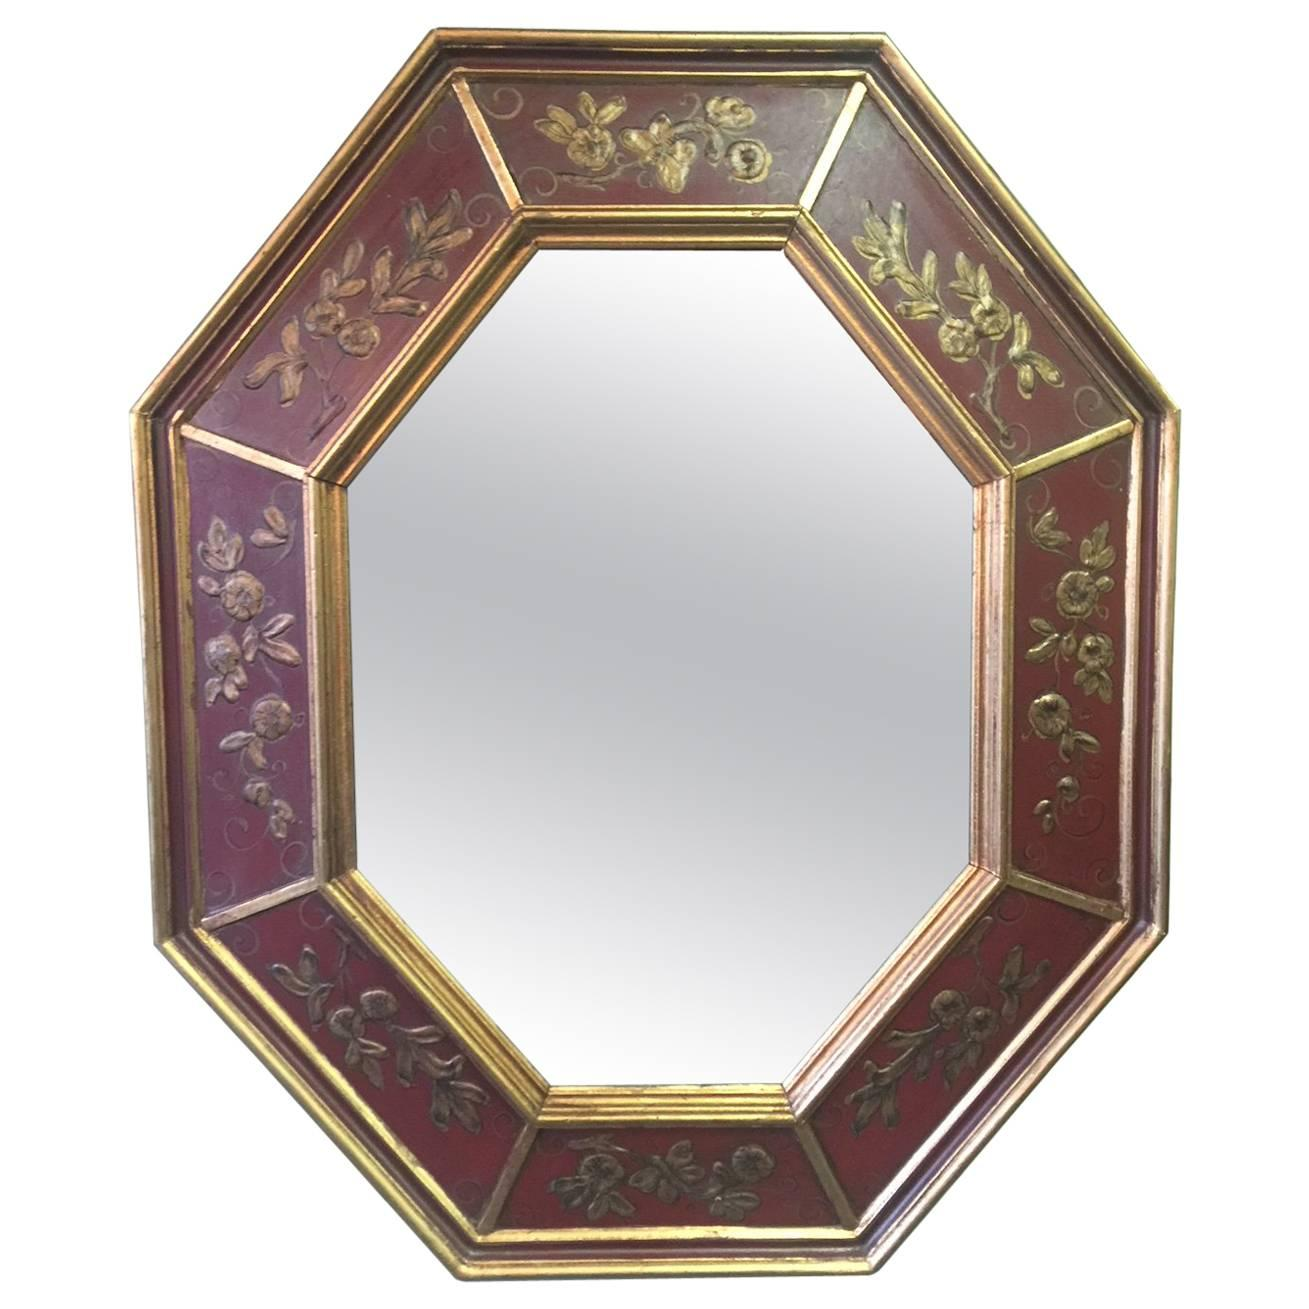 Midcentury Hand-Painted Gold Leaf Octagonal Mirror by La Barge of Italy